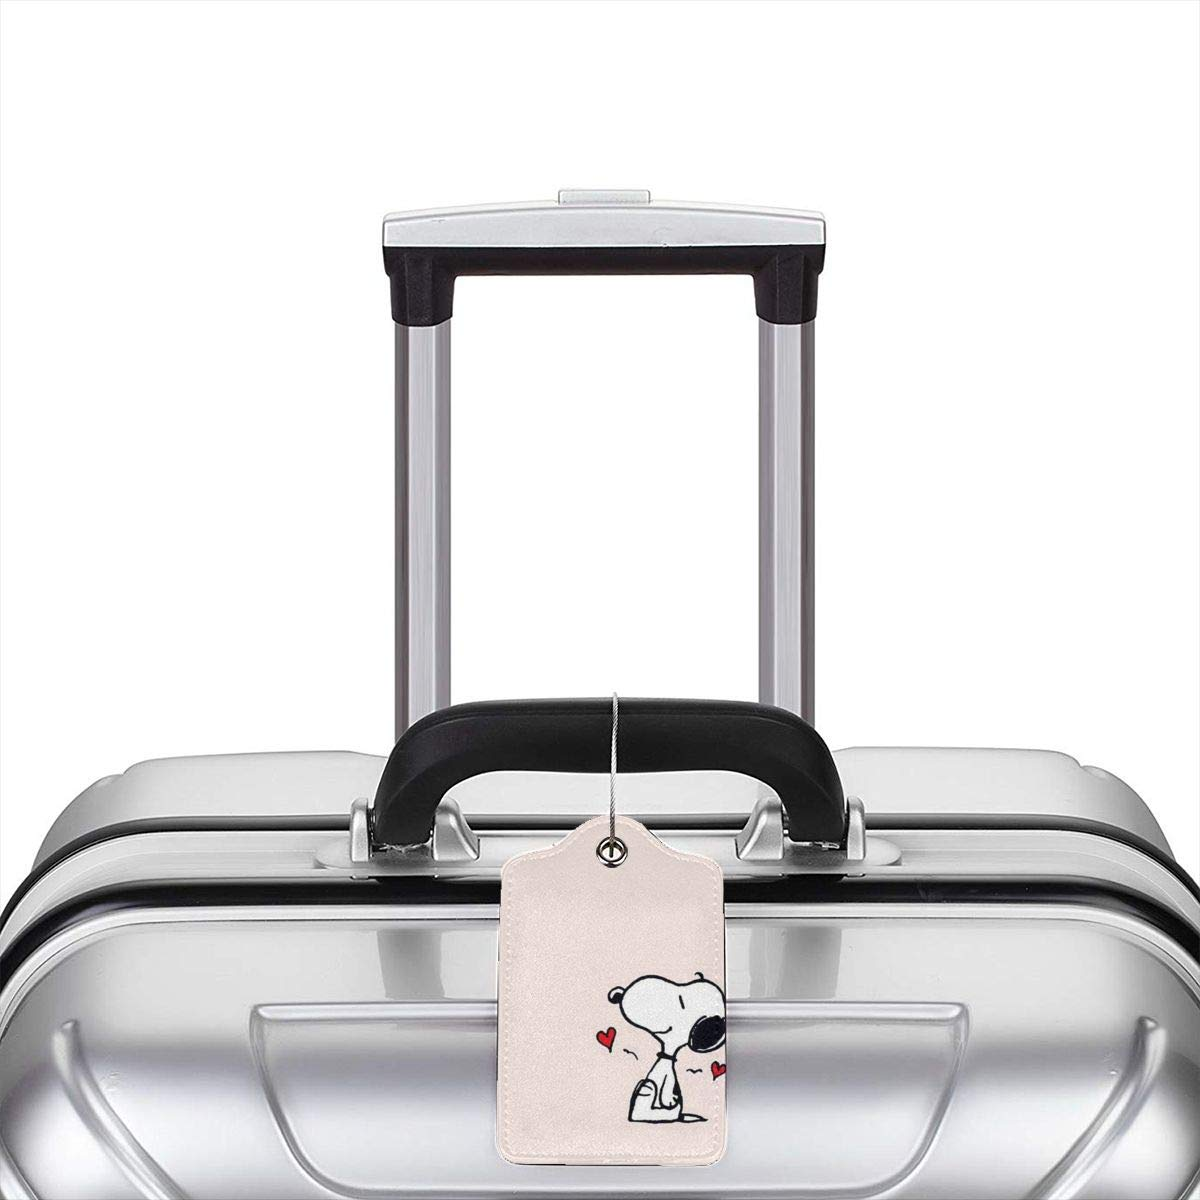 Fashion Lovely Snoopy Art Print Soft Leather Luggage Tags With Privacy Cover 1-4 Pcs Choose Suit For Travel,Vacation